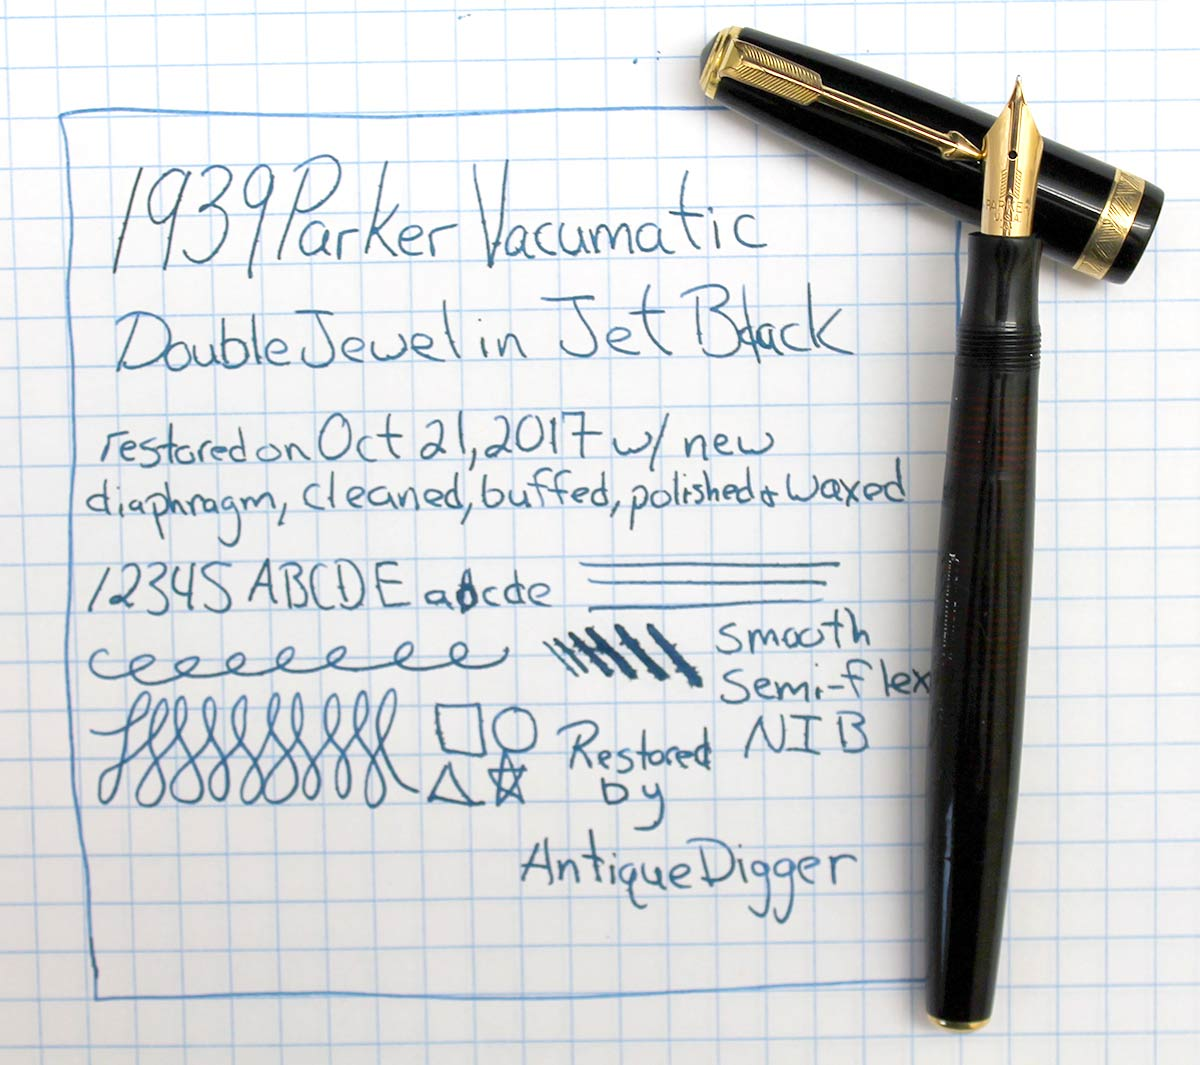 1938 PARKER JET BLACK VACUMATIC DOUBLE JEWEL FOUNTAIN PEN WITH F - B FLEX NIB IN RESTORED CONDITION OFFERED BY ANTIQUE DIGGER